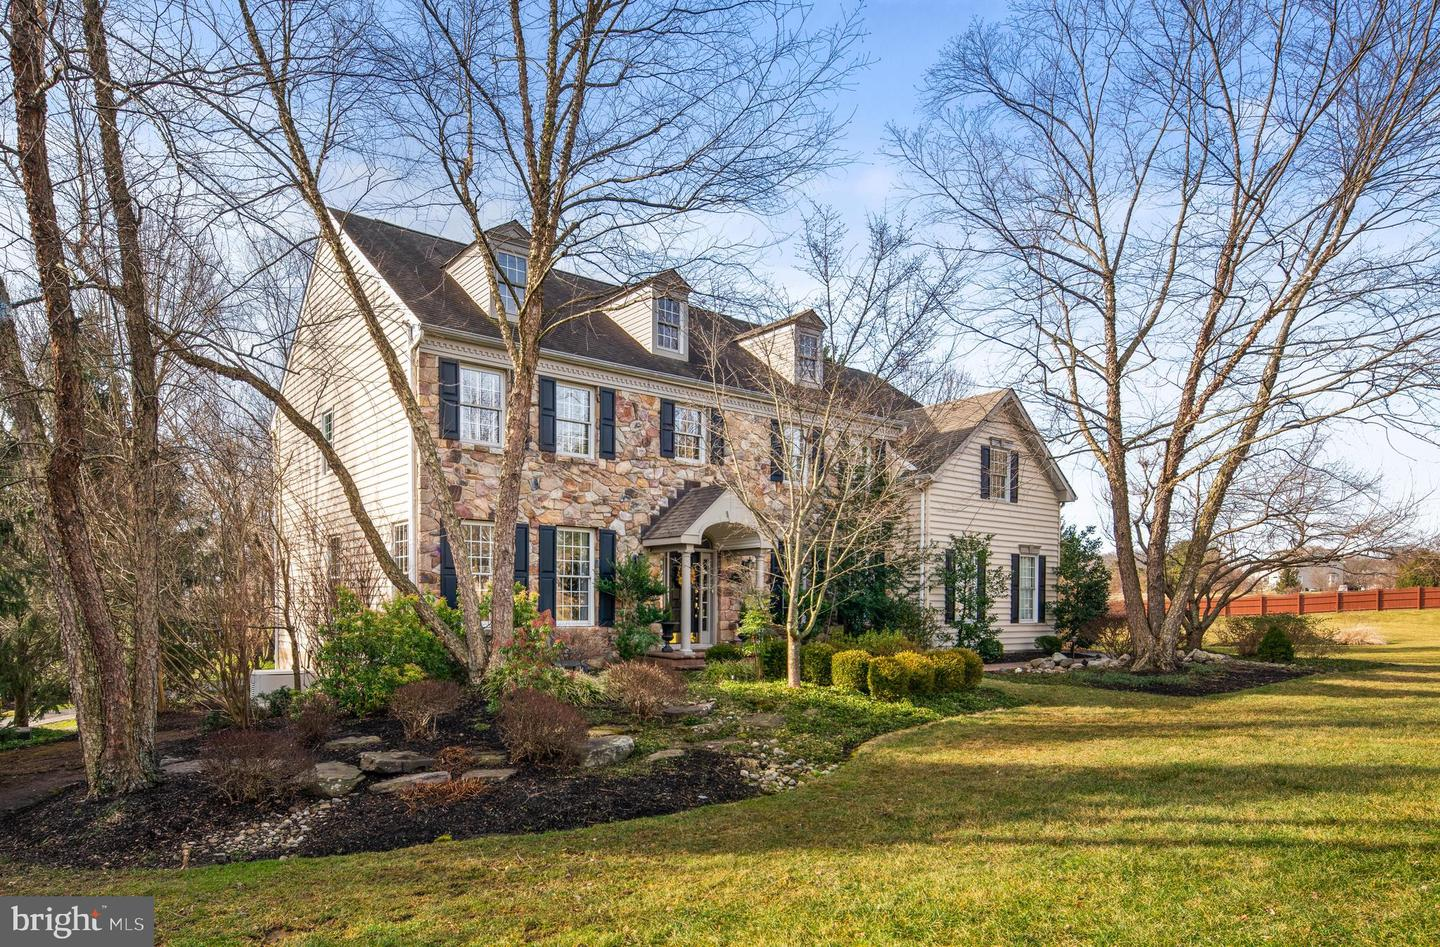 Property for Sale at Yardley, Pennsylvania 19067 United States